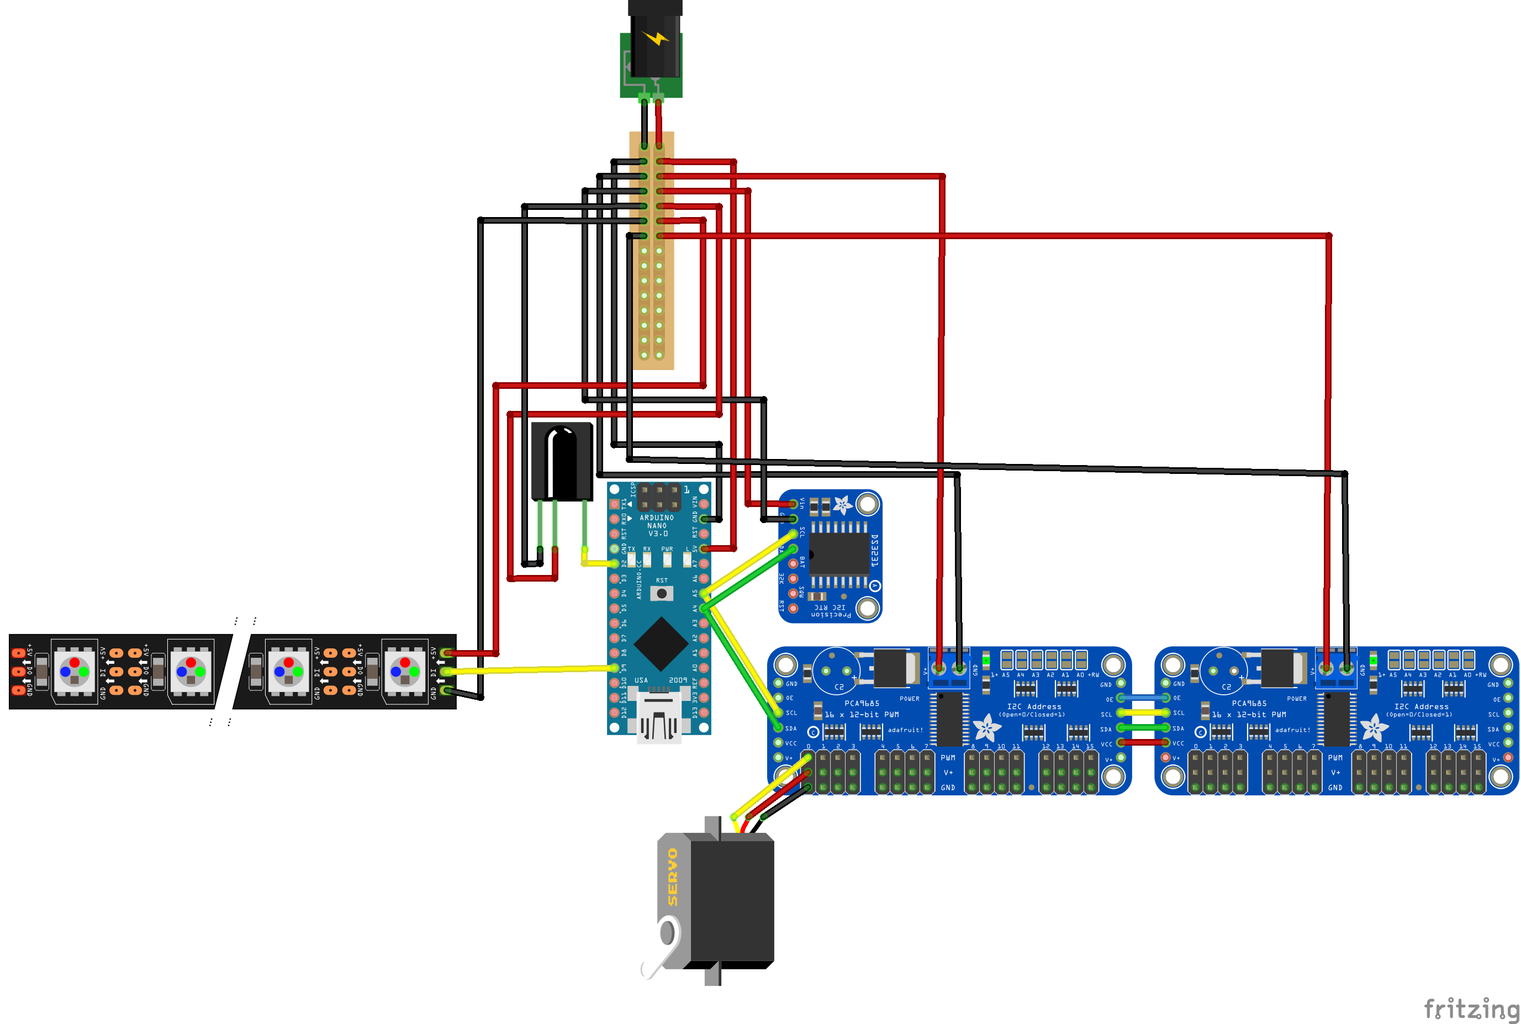 Attach Components to Backplate and Wiring